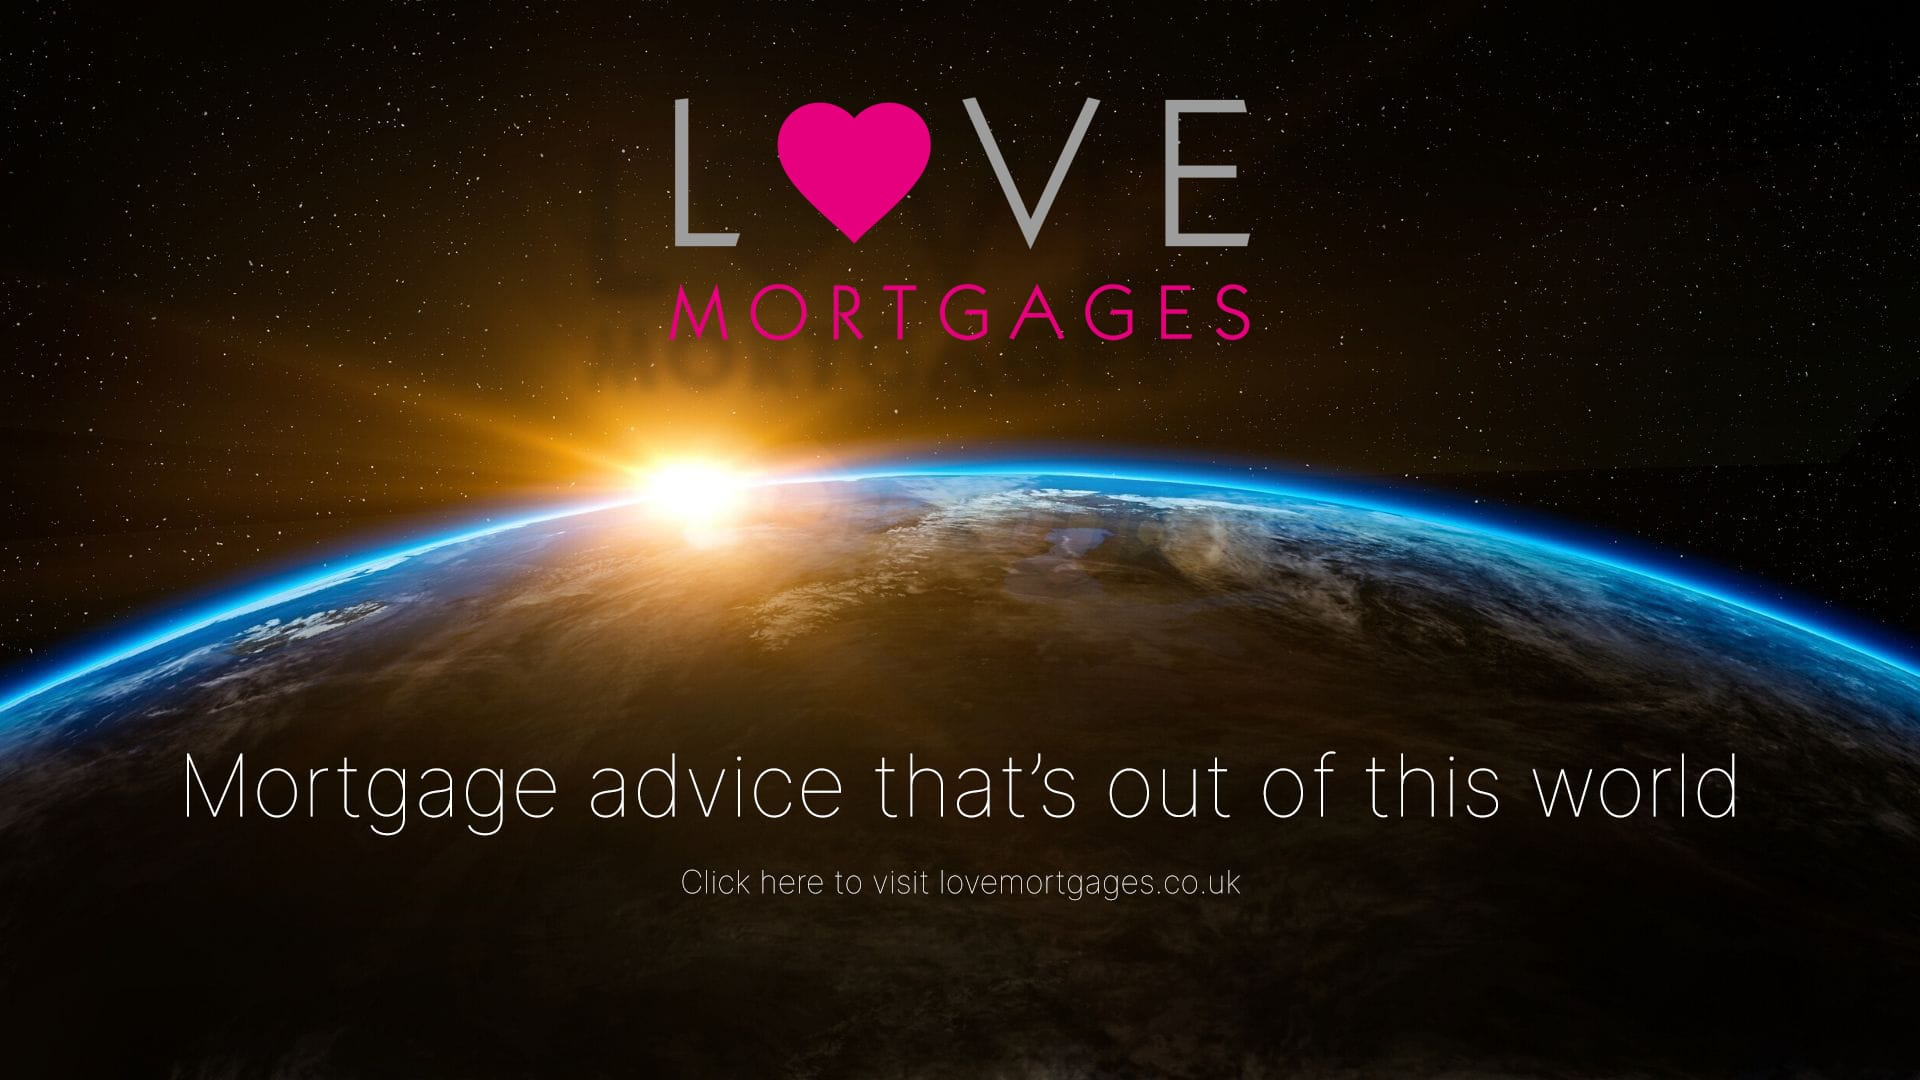 Love Mortgages